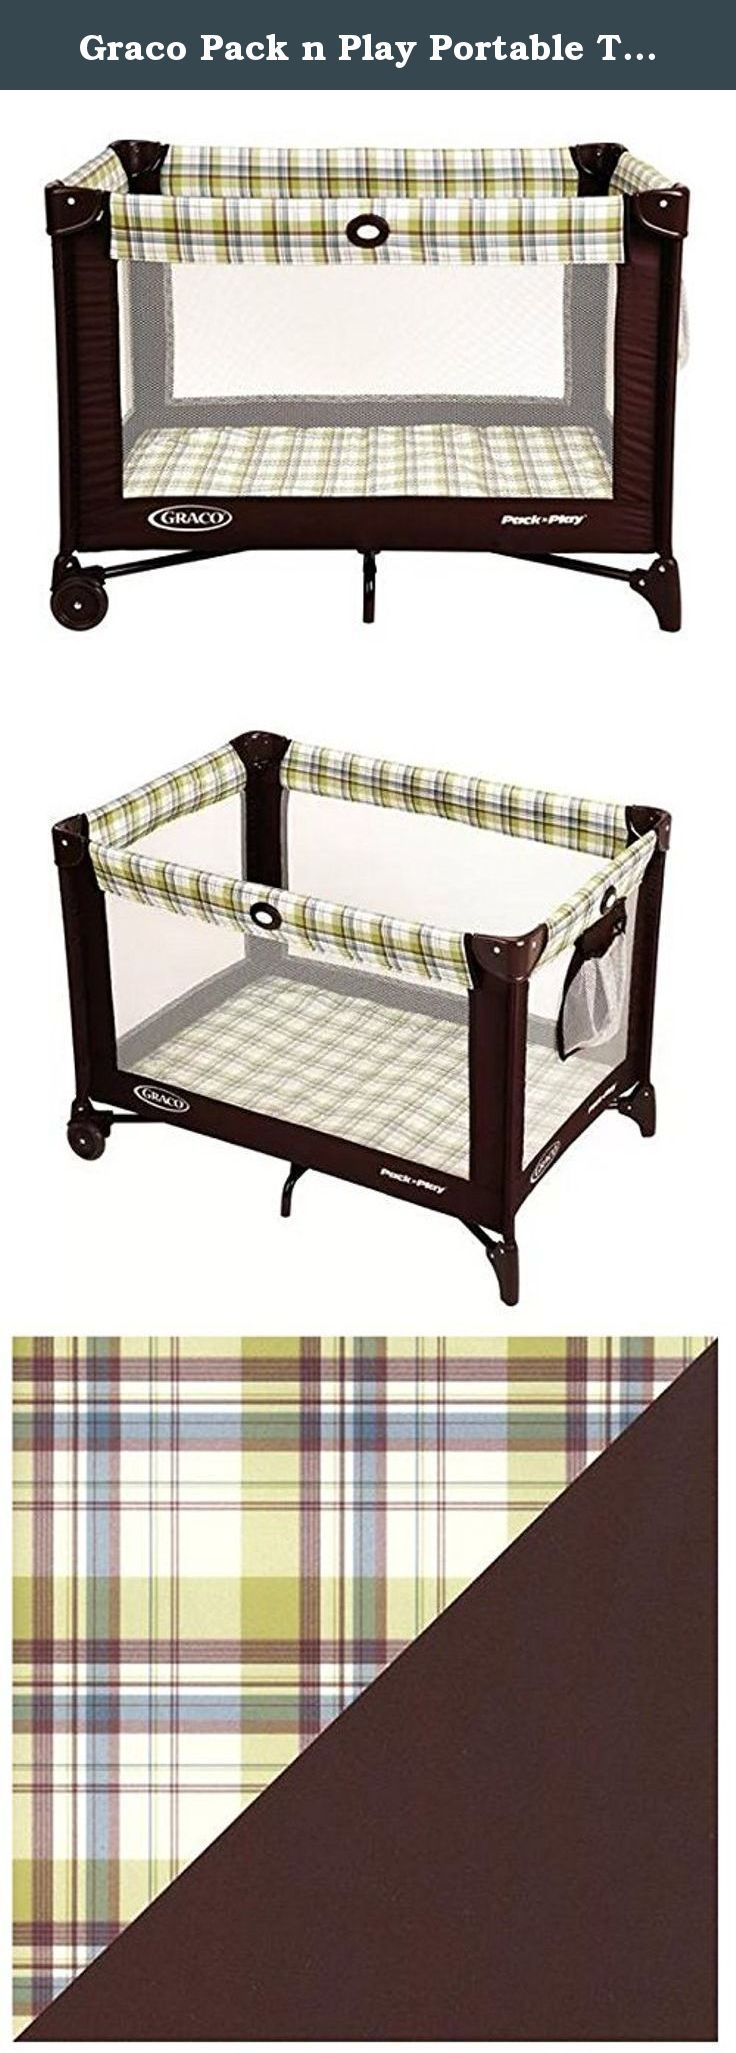 Baby crib playard - Graco Pack N Play Portable Travel Baby Crib Playpen Bassinet Ashford Playard The Graco Pack